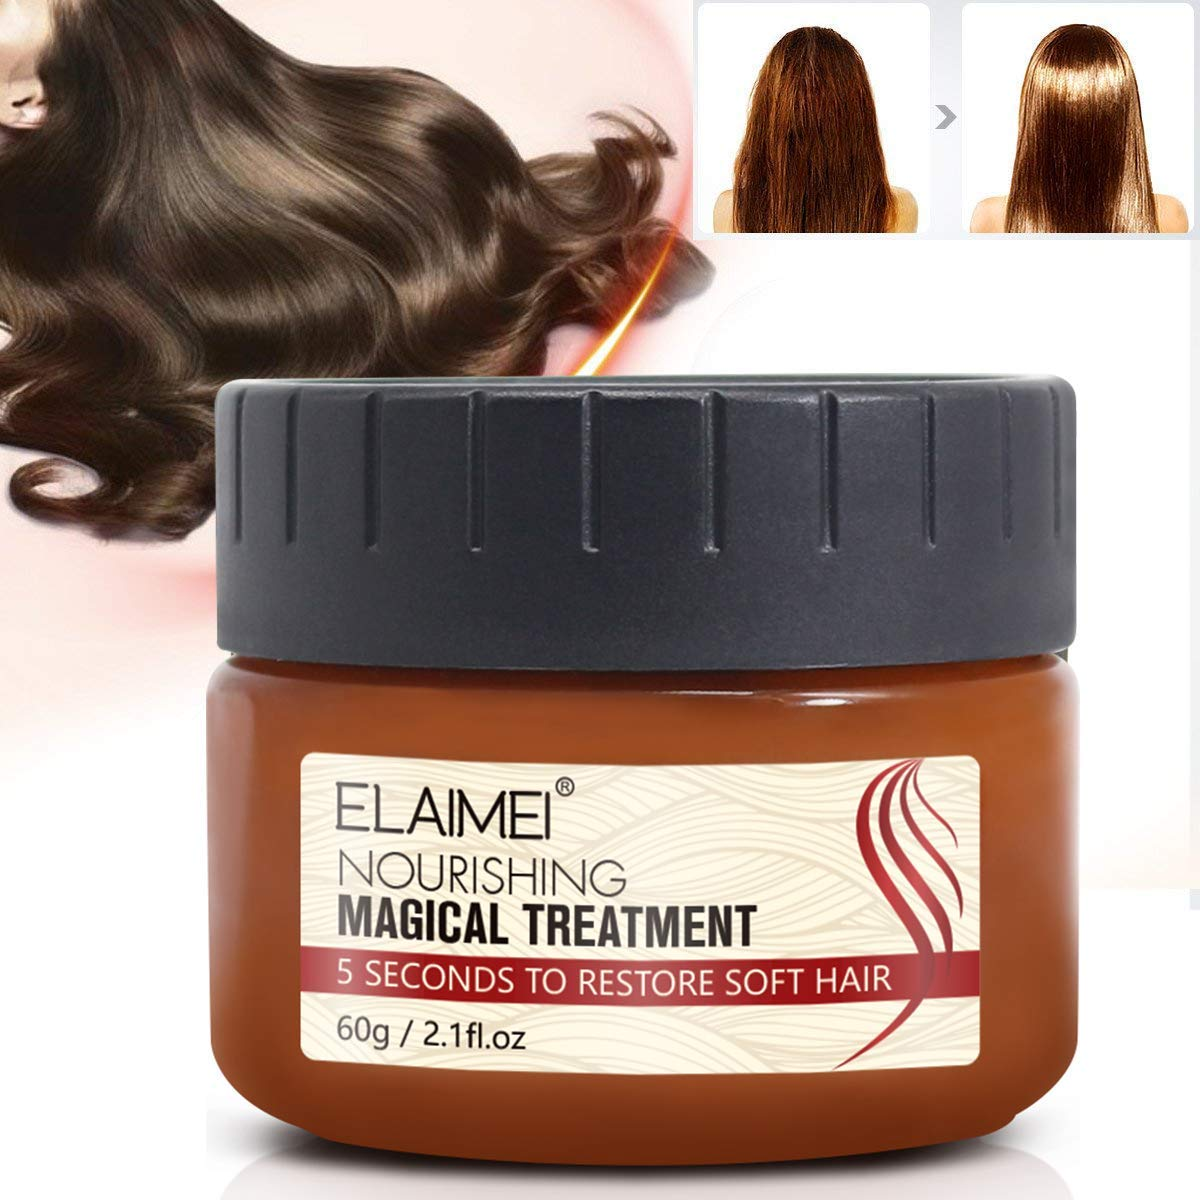 Magical hair treatment mask Hair Max 67% OFF Seconds Time sale Mask Repairs 5